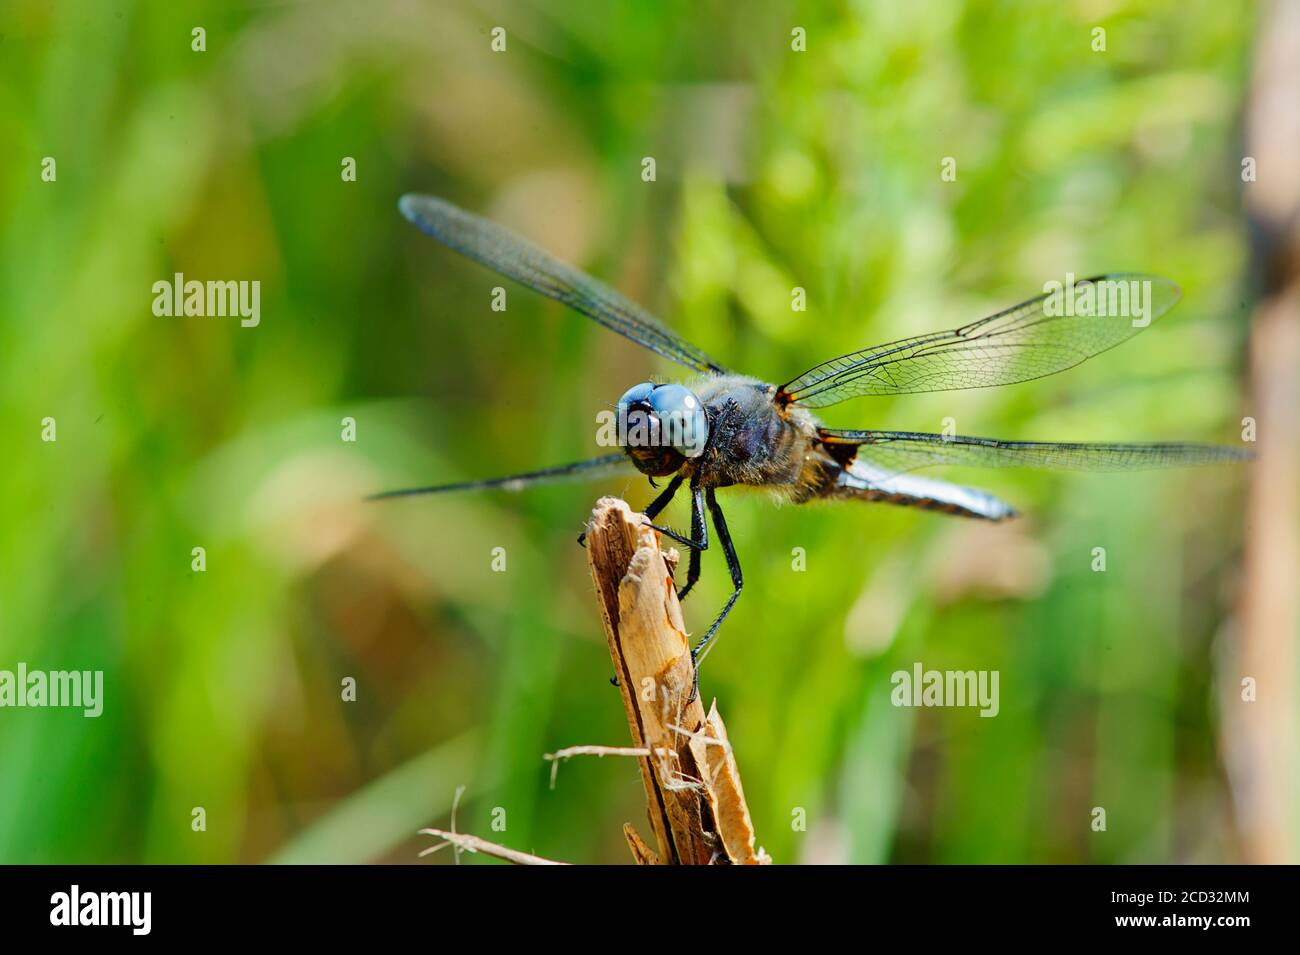 Colorful Dragonfly resting on a twig with blurred green nature background Stock Photo